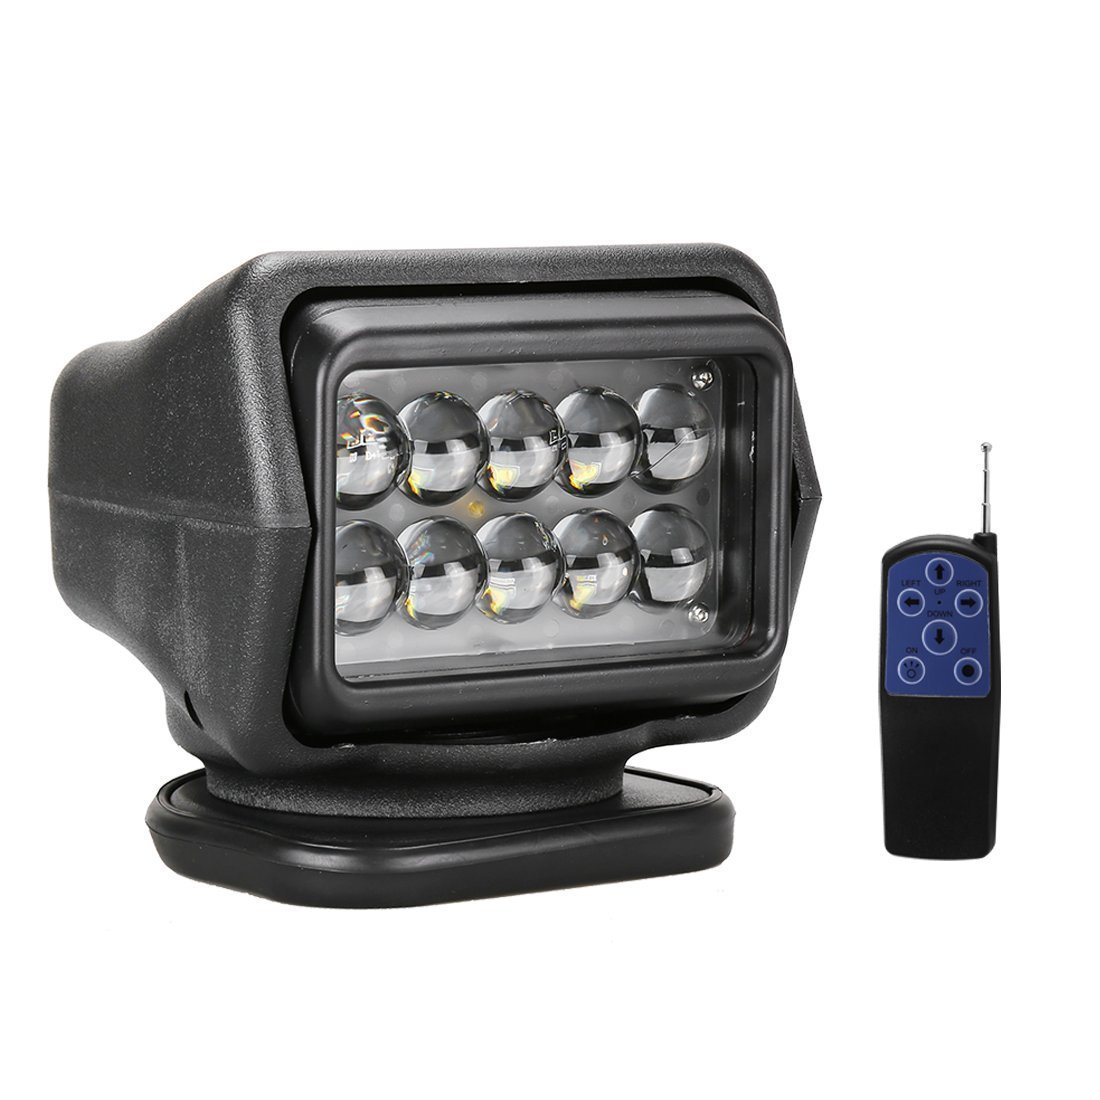 LED Rotating Remote Control Search Light 50W 12-24V 360/º Cree Working Light Emergency Lighting Construction Lighting For Boat Offroad Car SUV Camping Garden